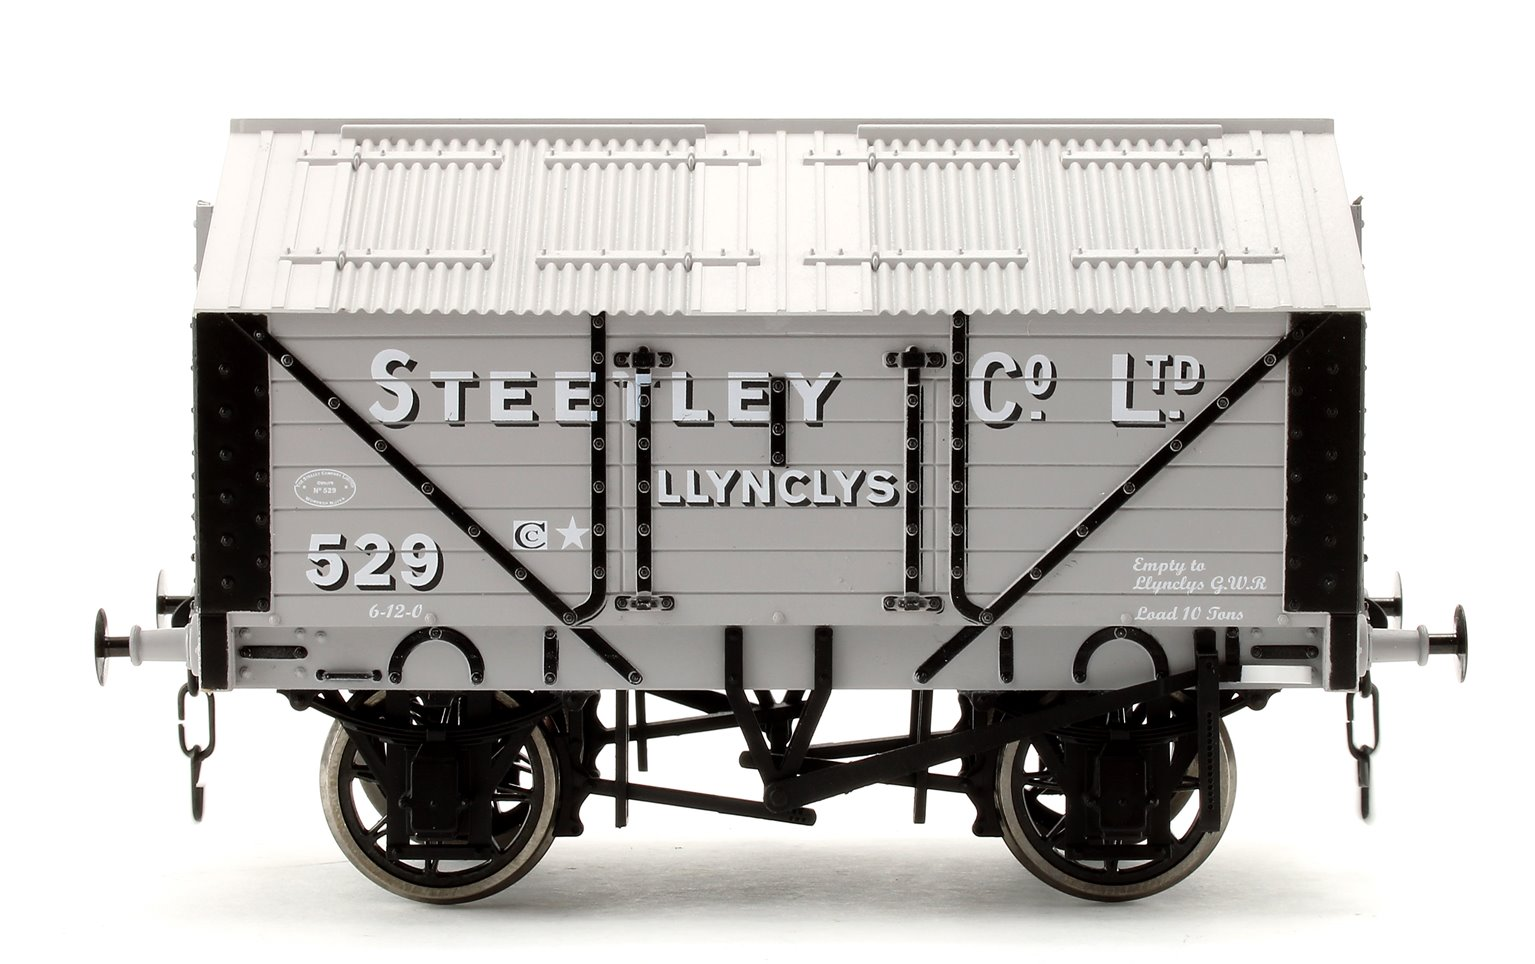 Lime Wagon Steetley Co. Llynclys